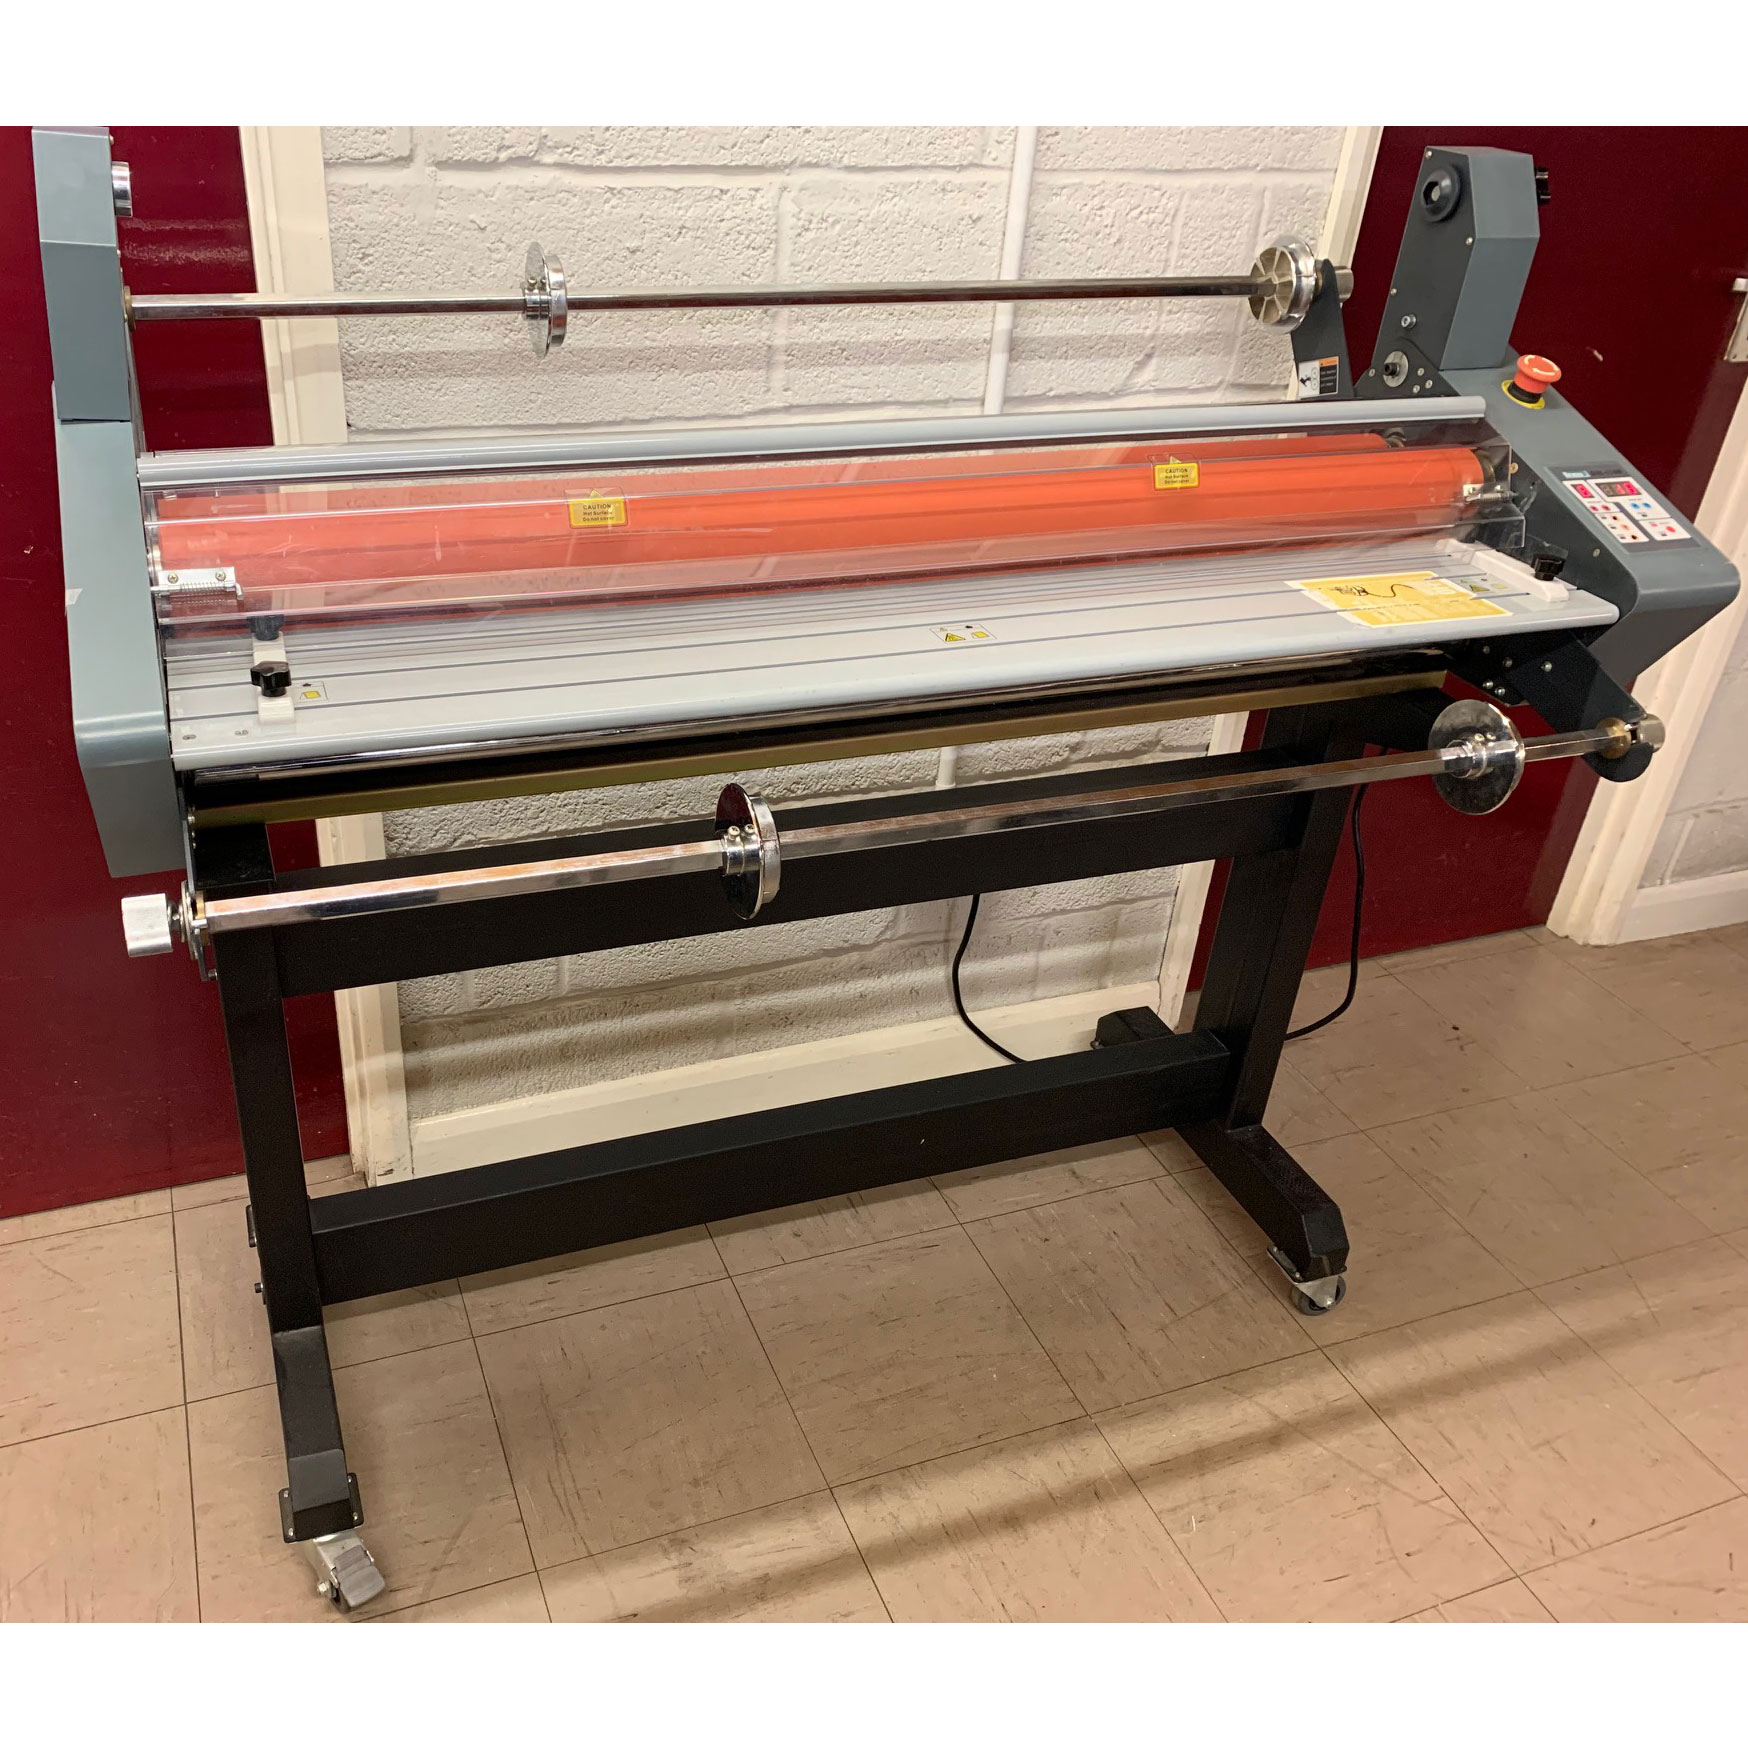 Pre-owned Linea DH1100 A0 Hot-Seal Roll Laminator Encapsulator